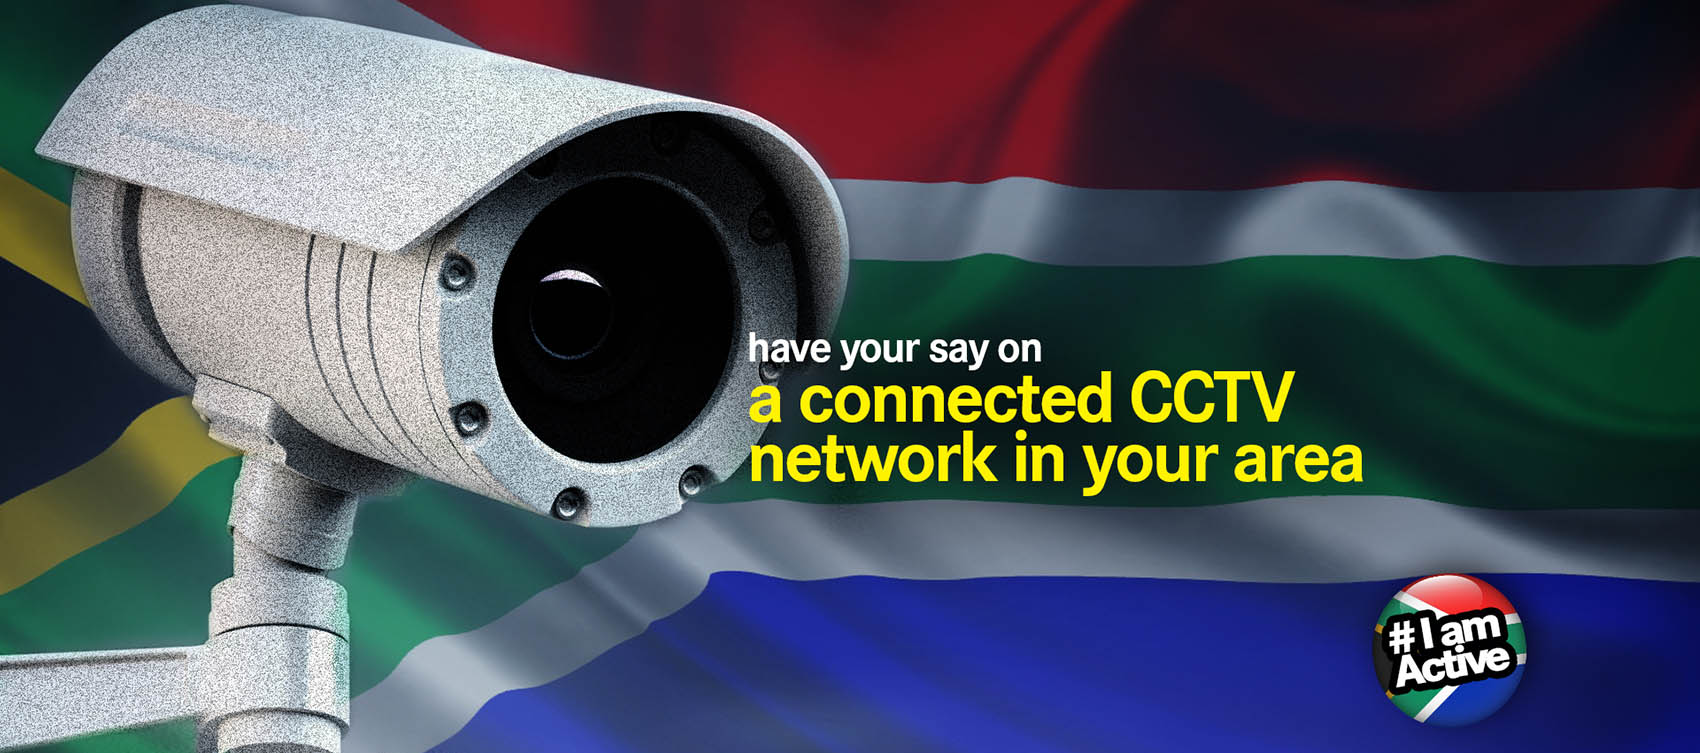 cctv-connected-network